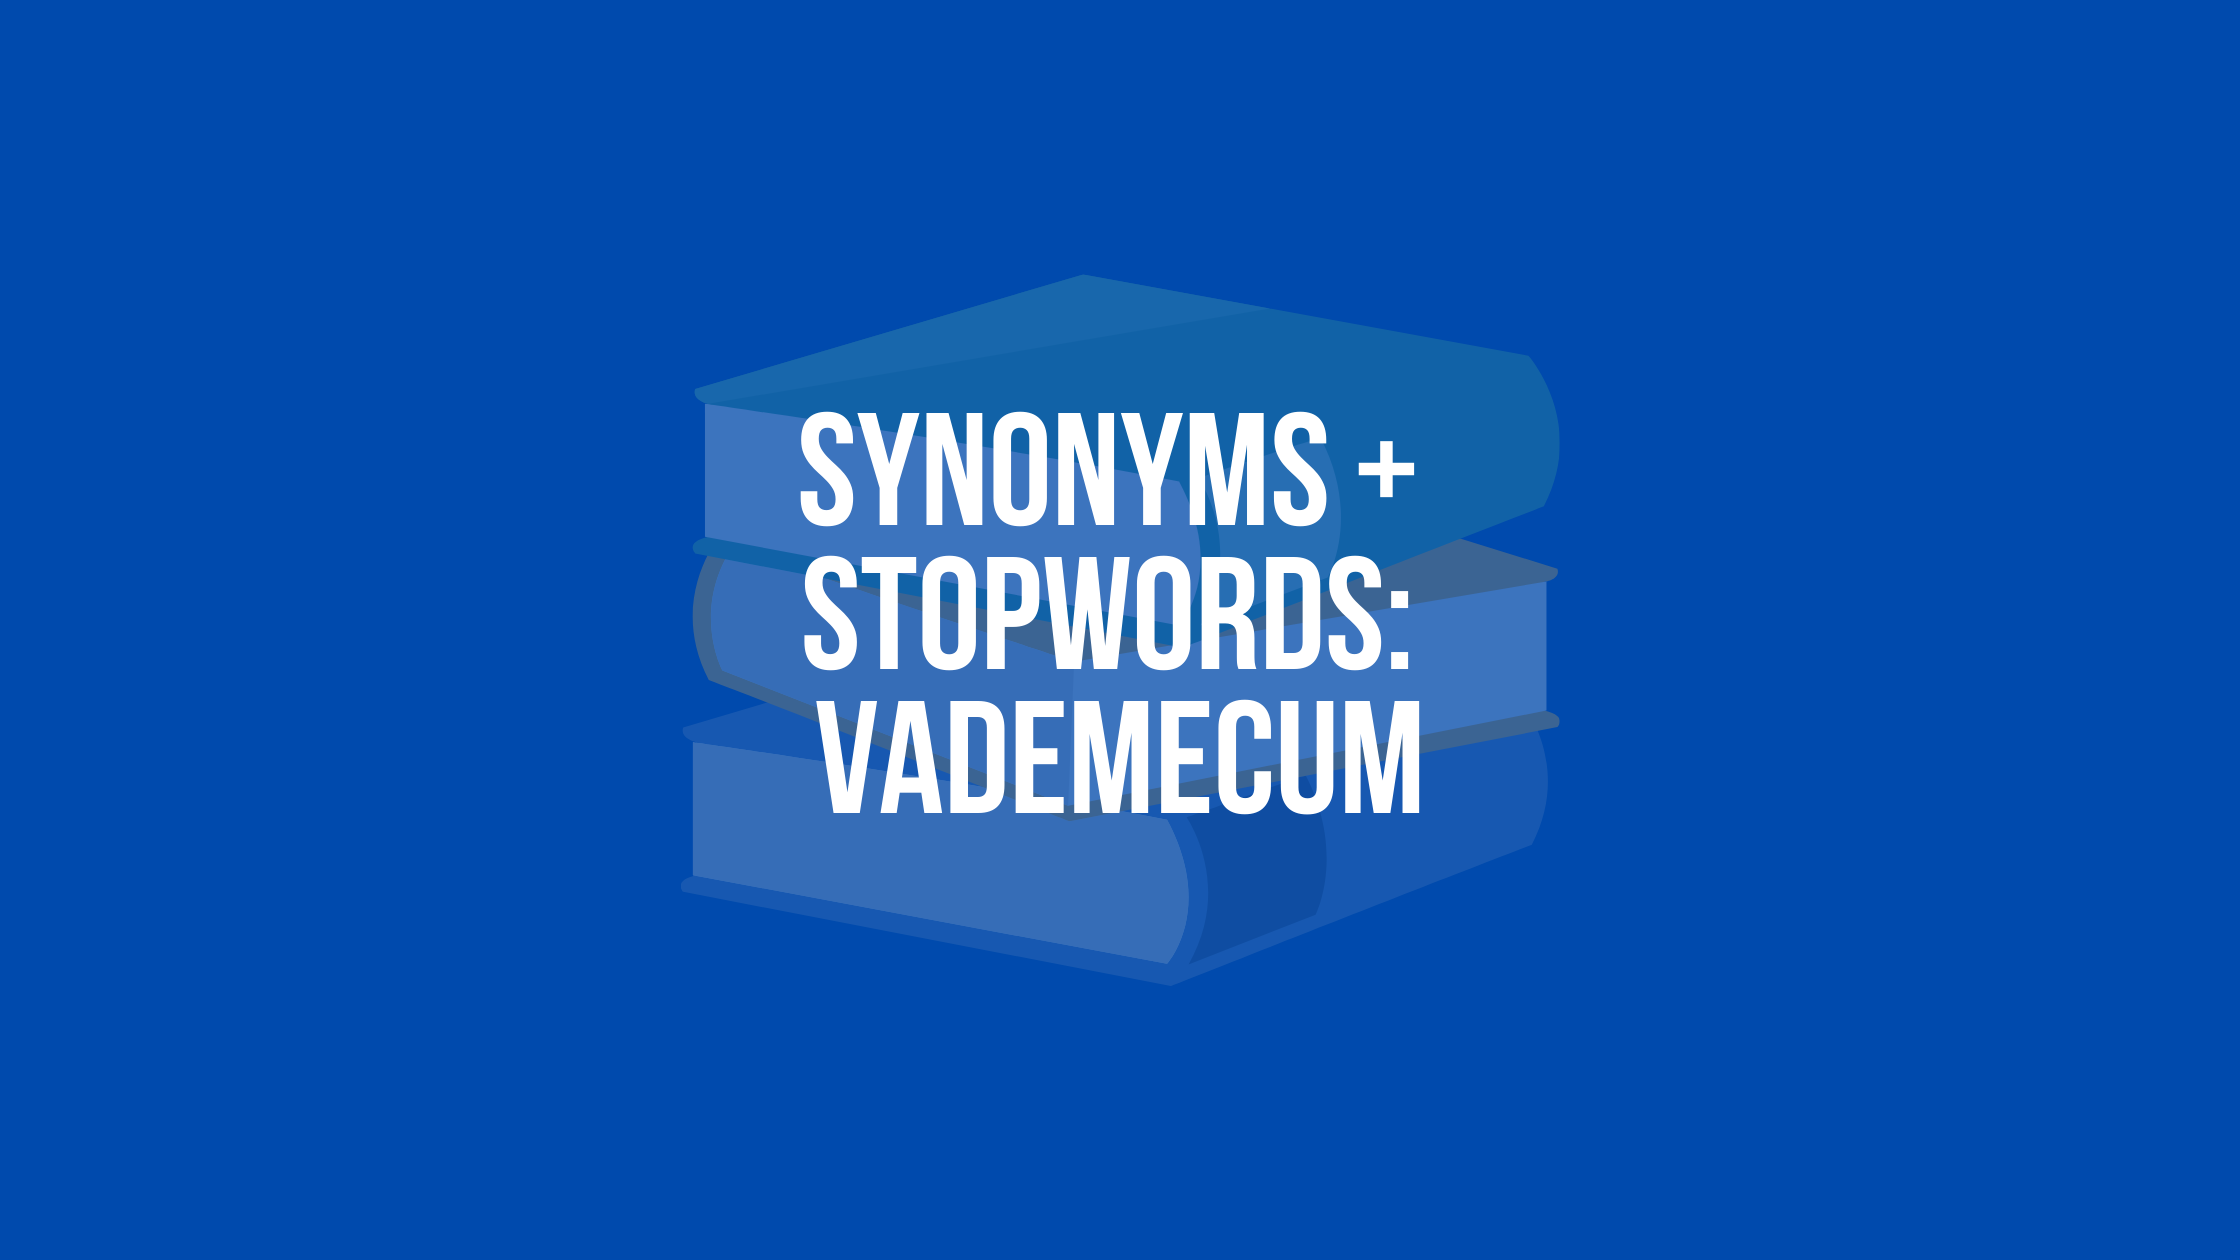 Synonyms and Stopwords: Vademecum